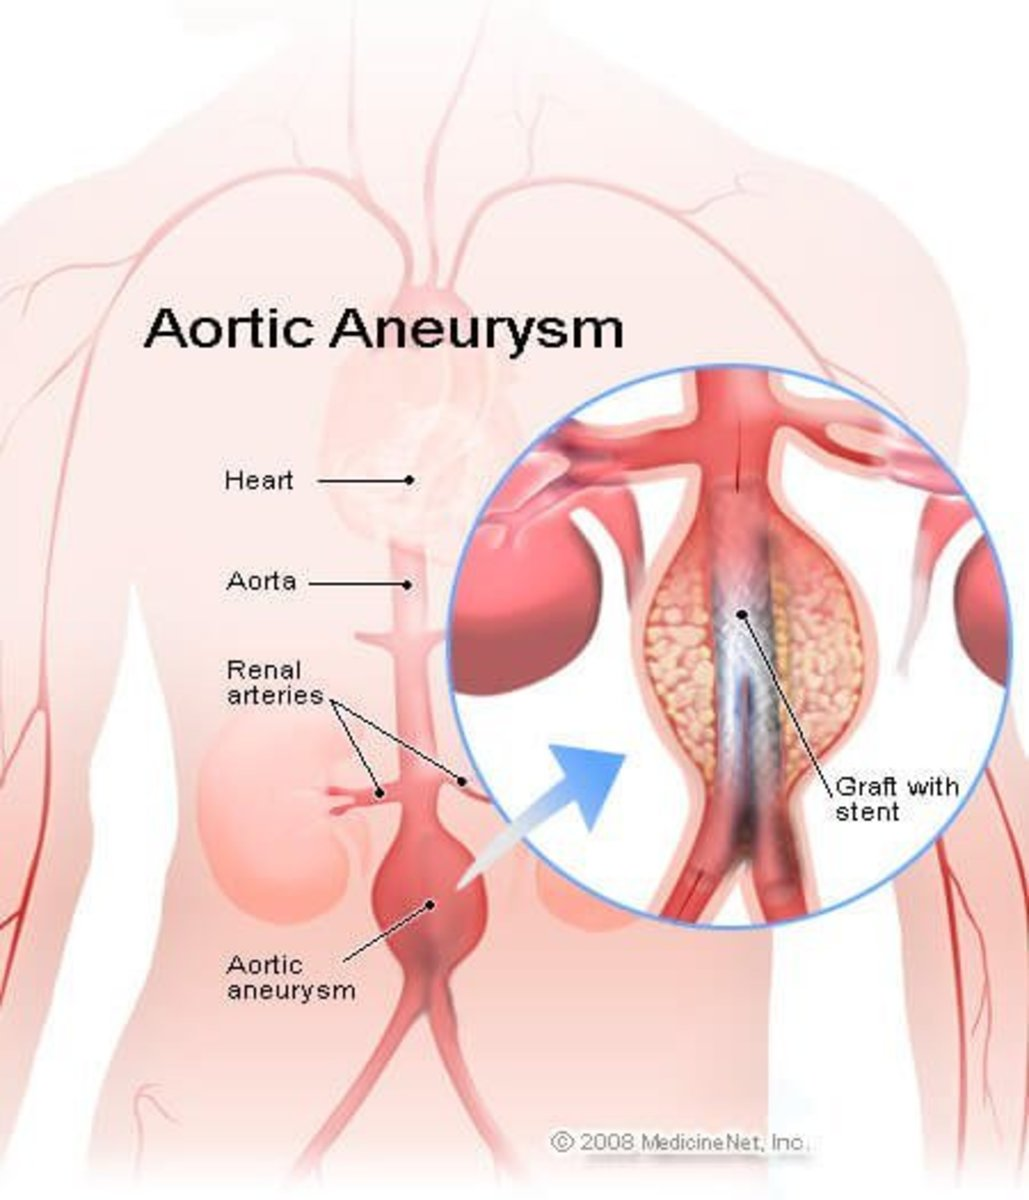 abdominal-aortic-aneurysm-facts